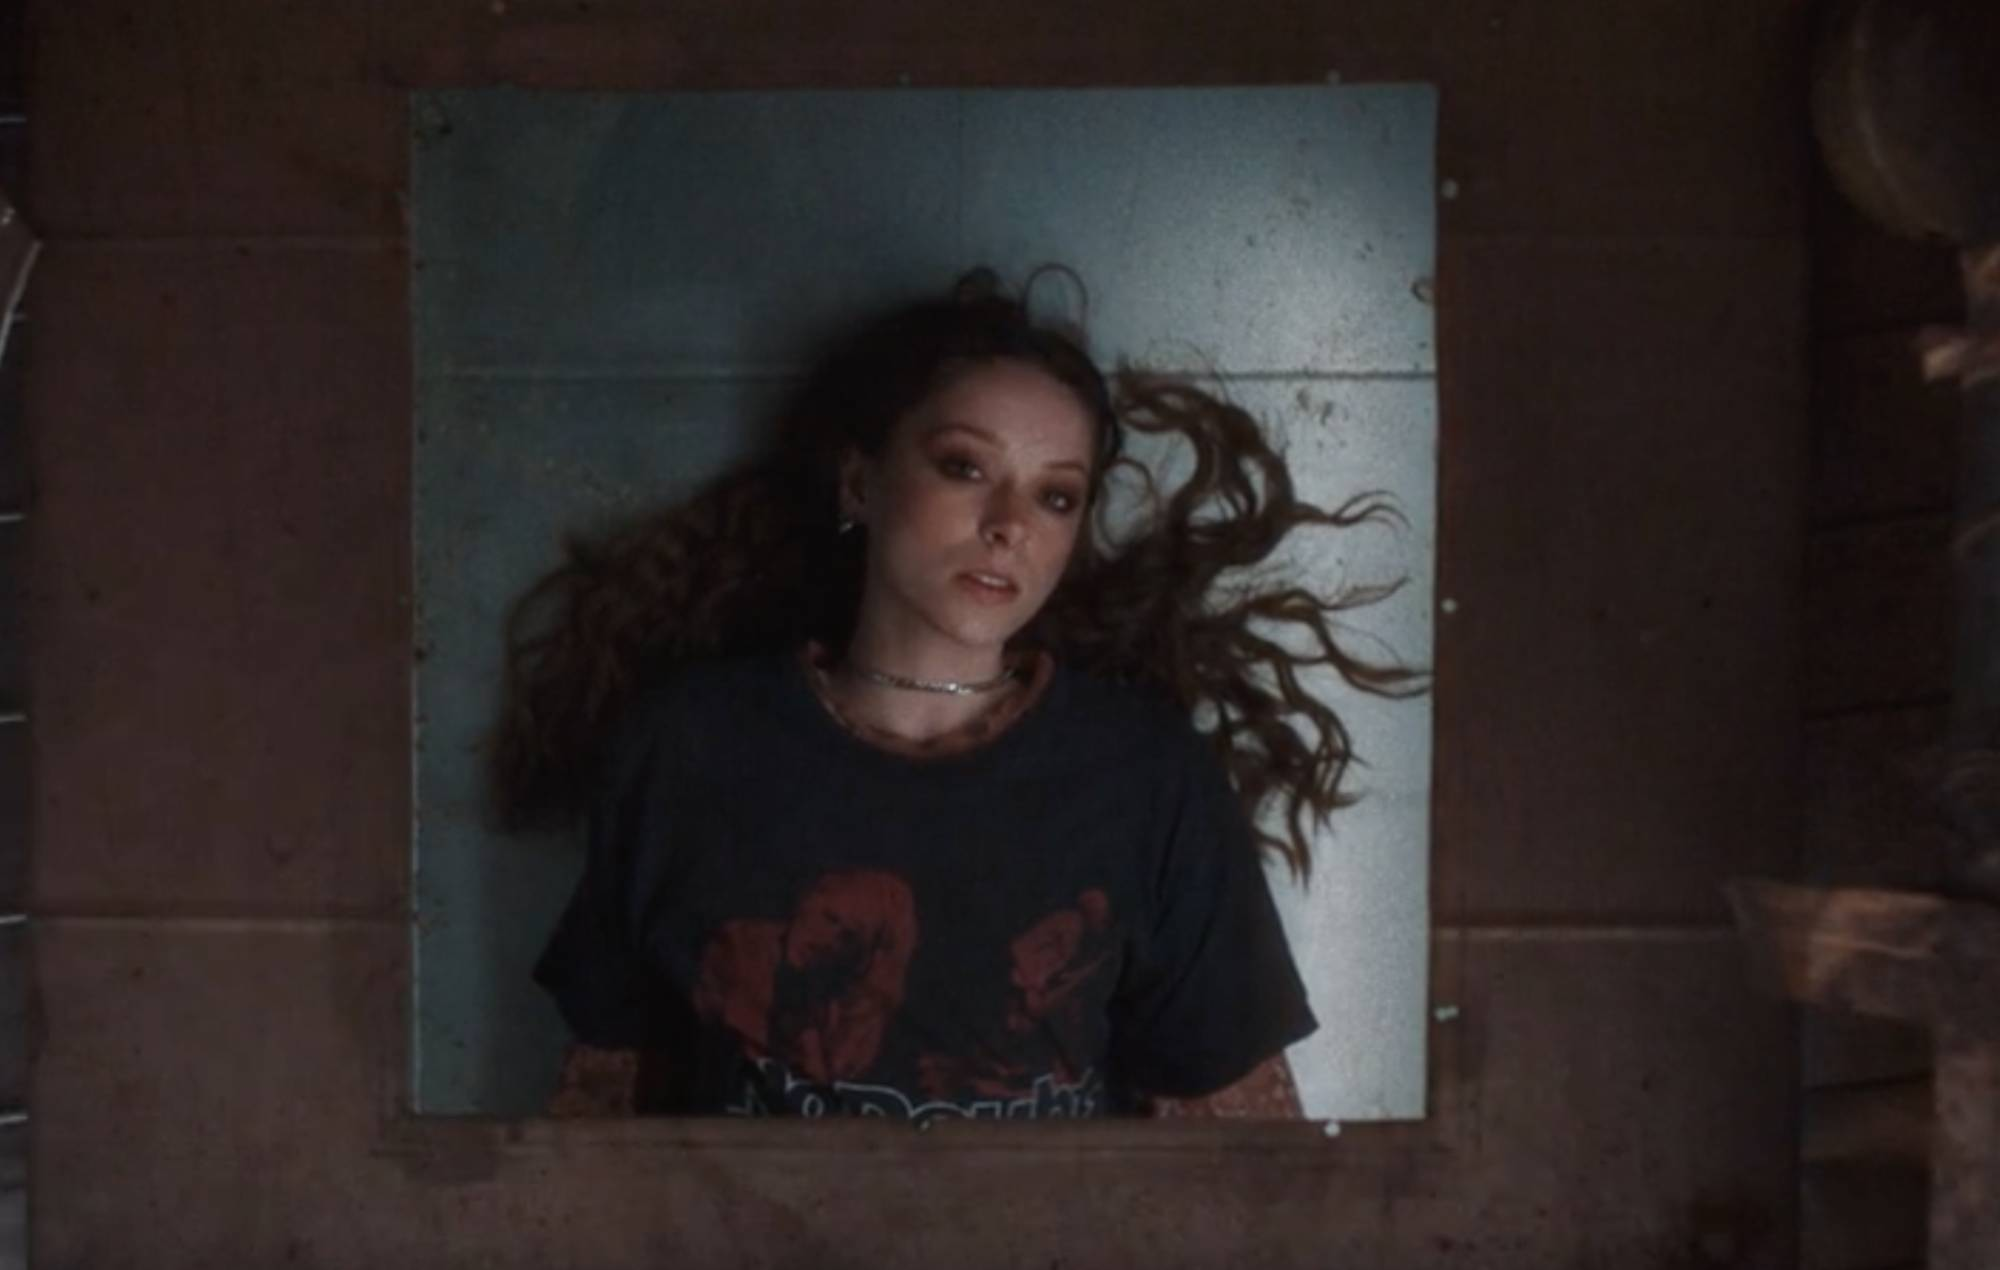 Watch Holly Humberstone's claustrophobic video for new single 'The Walls Are Way Too Thin'